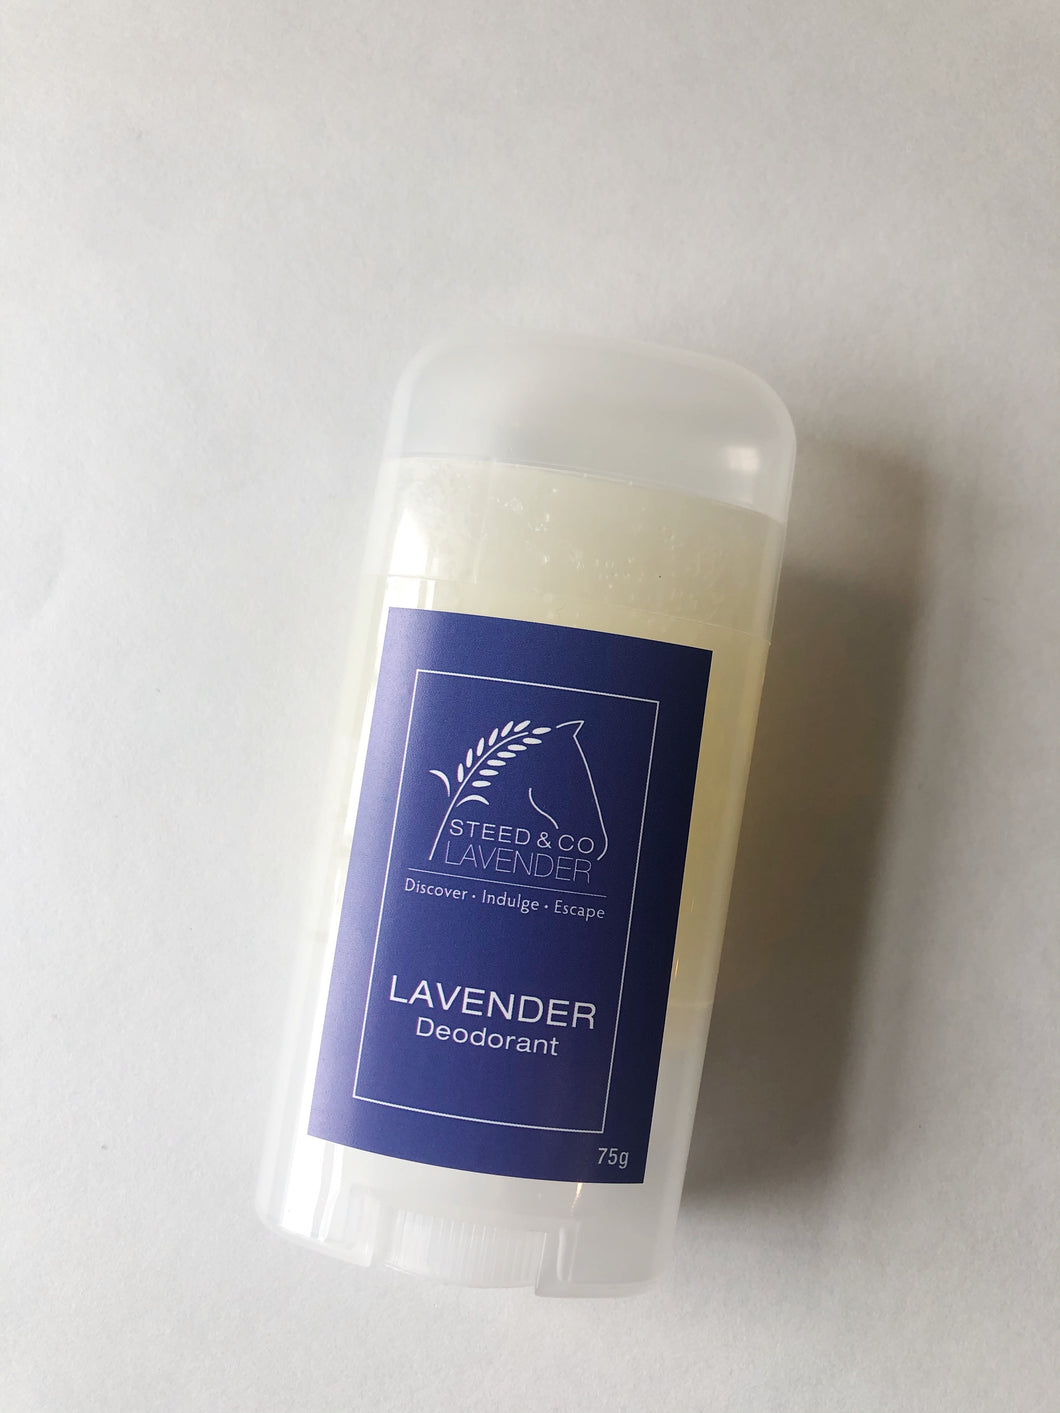 Steed & Co Lavender Deodorant